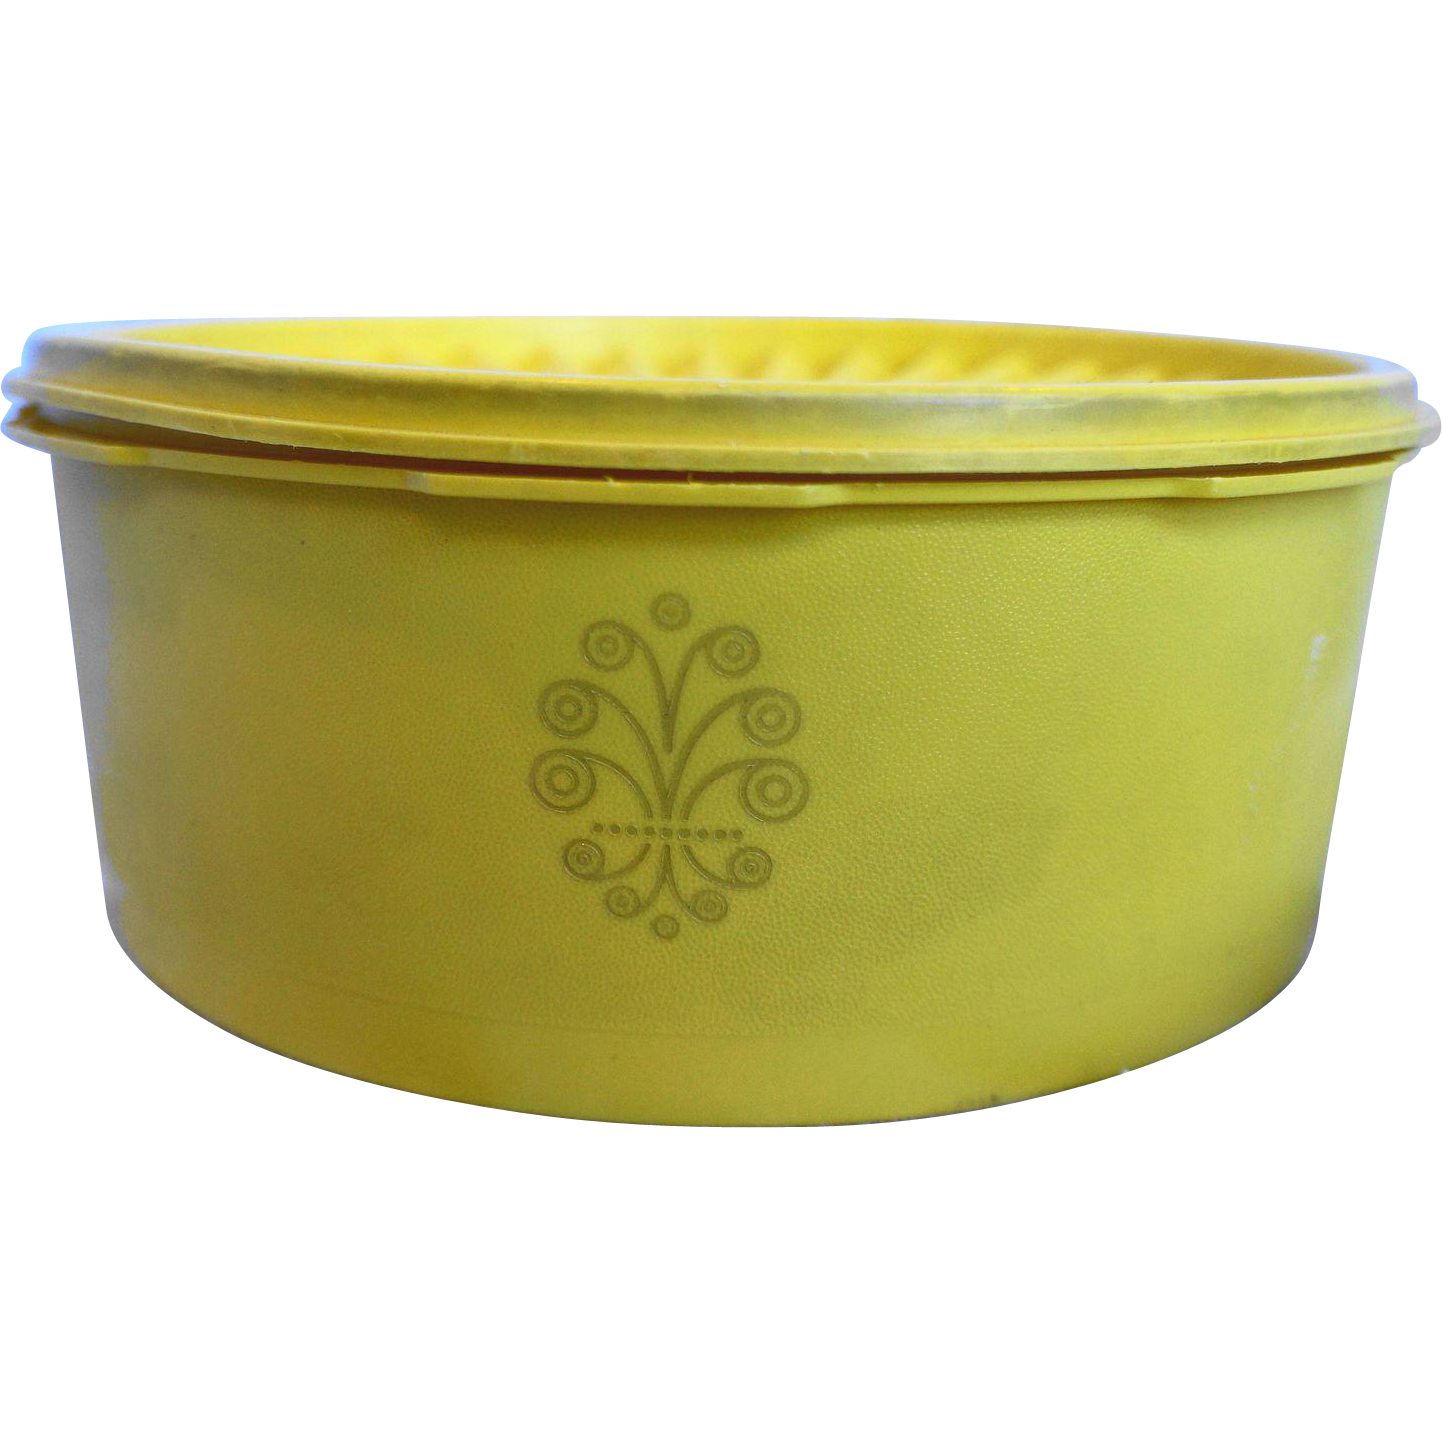 Tupperware Bright Yellow Servalier 8 Cup Canister 1204